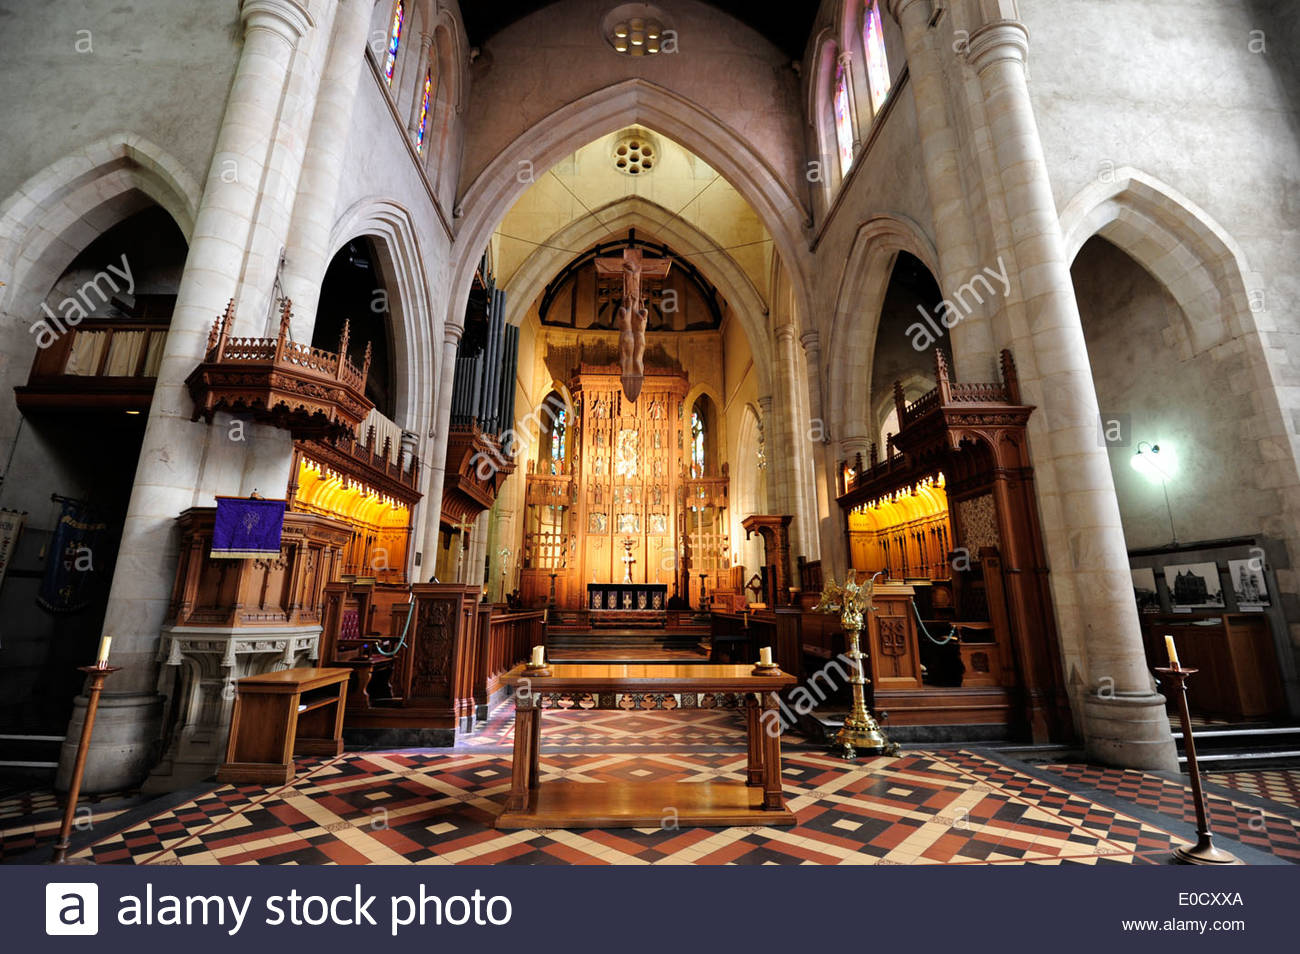 Gothic Style Interior interior view of st. peter's cathedral, church in gothic style